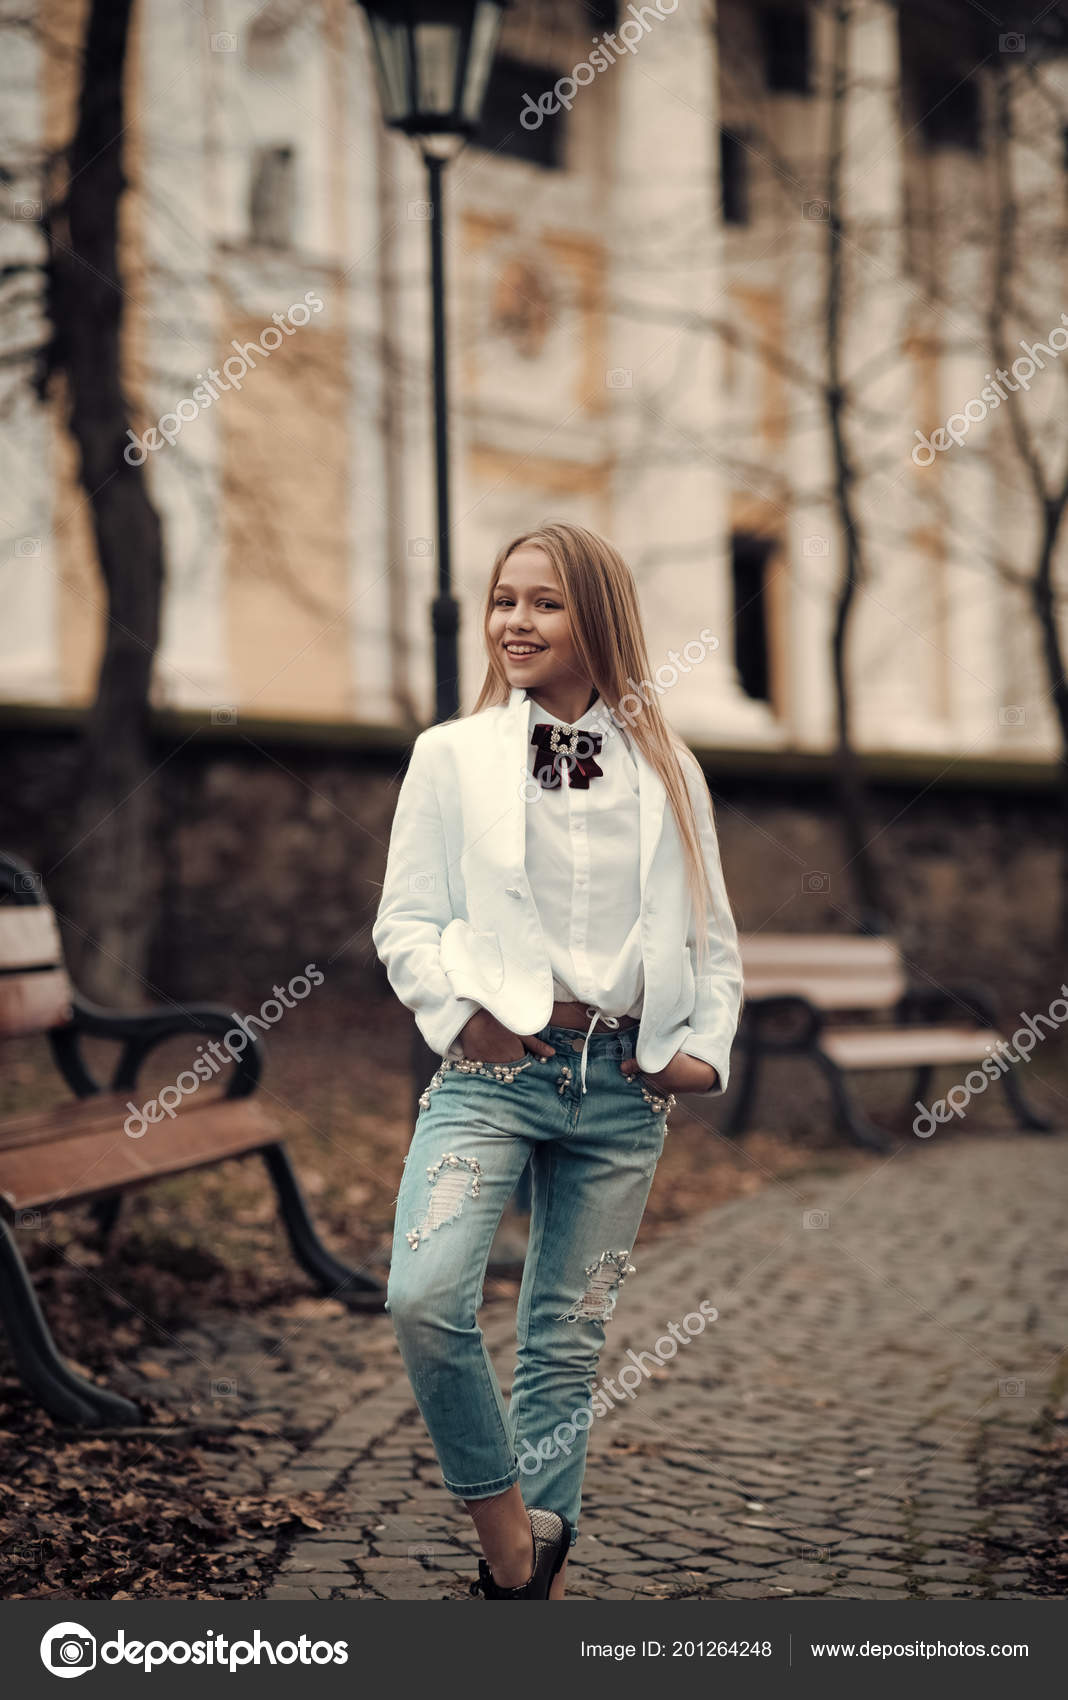 Kid Fashion Trend And Style Girl Smile In Fashionable Jeans In Park